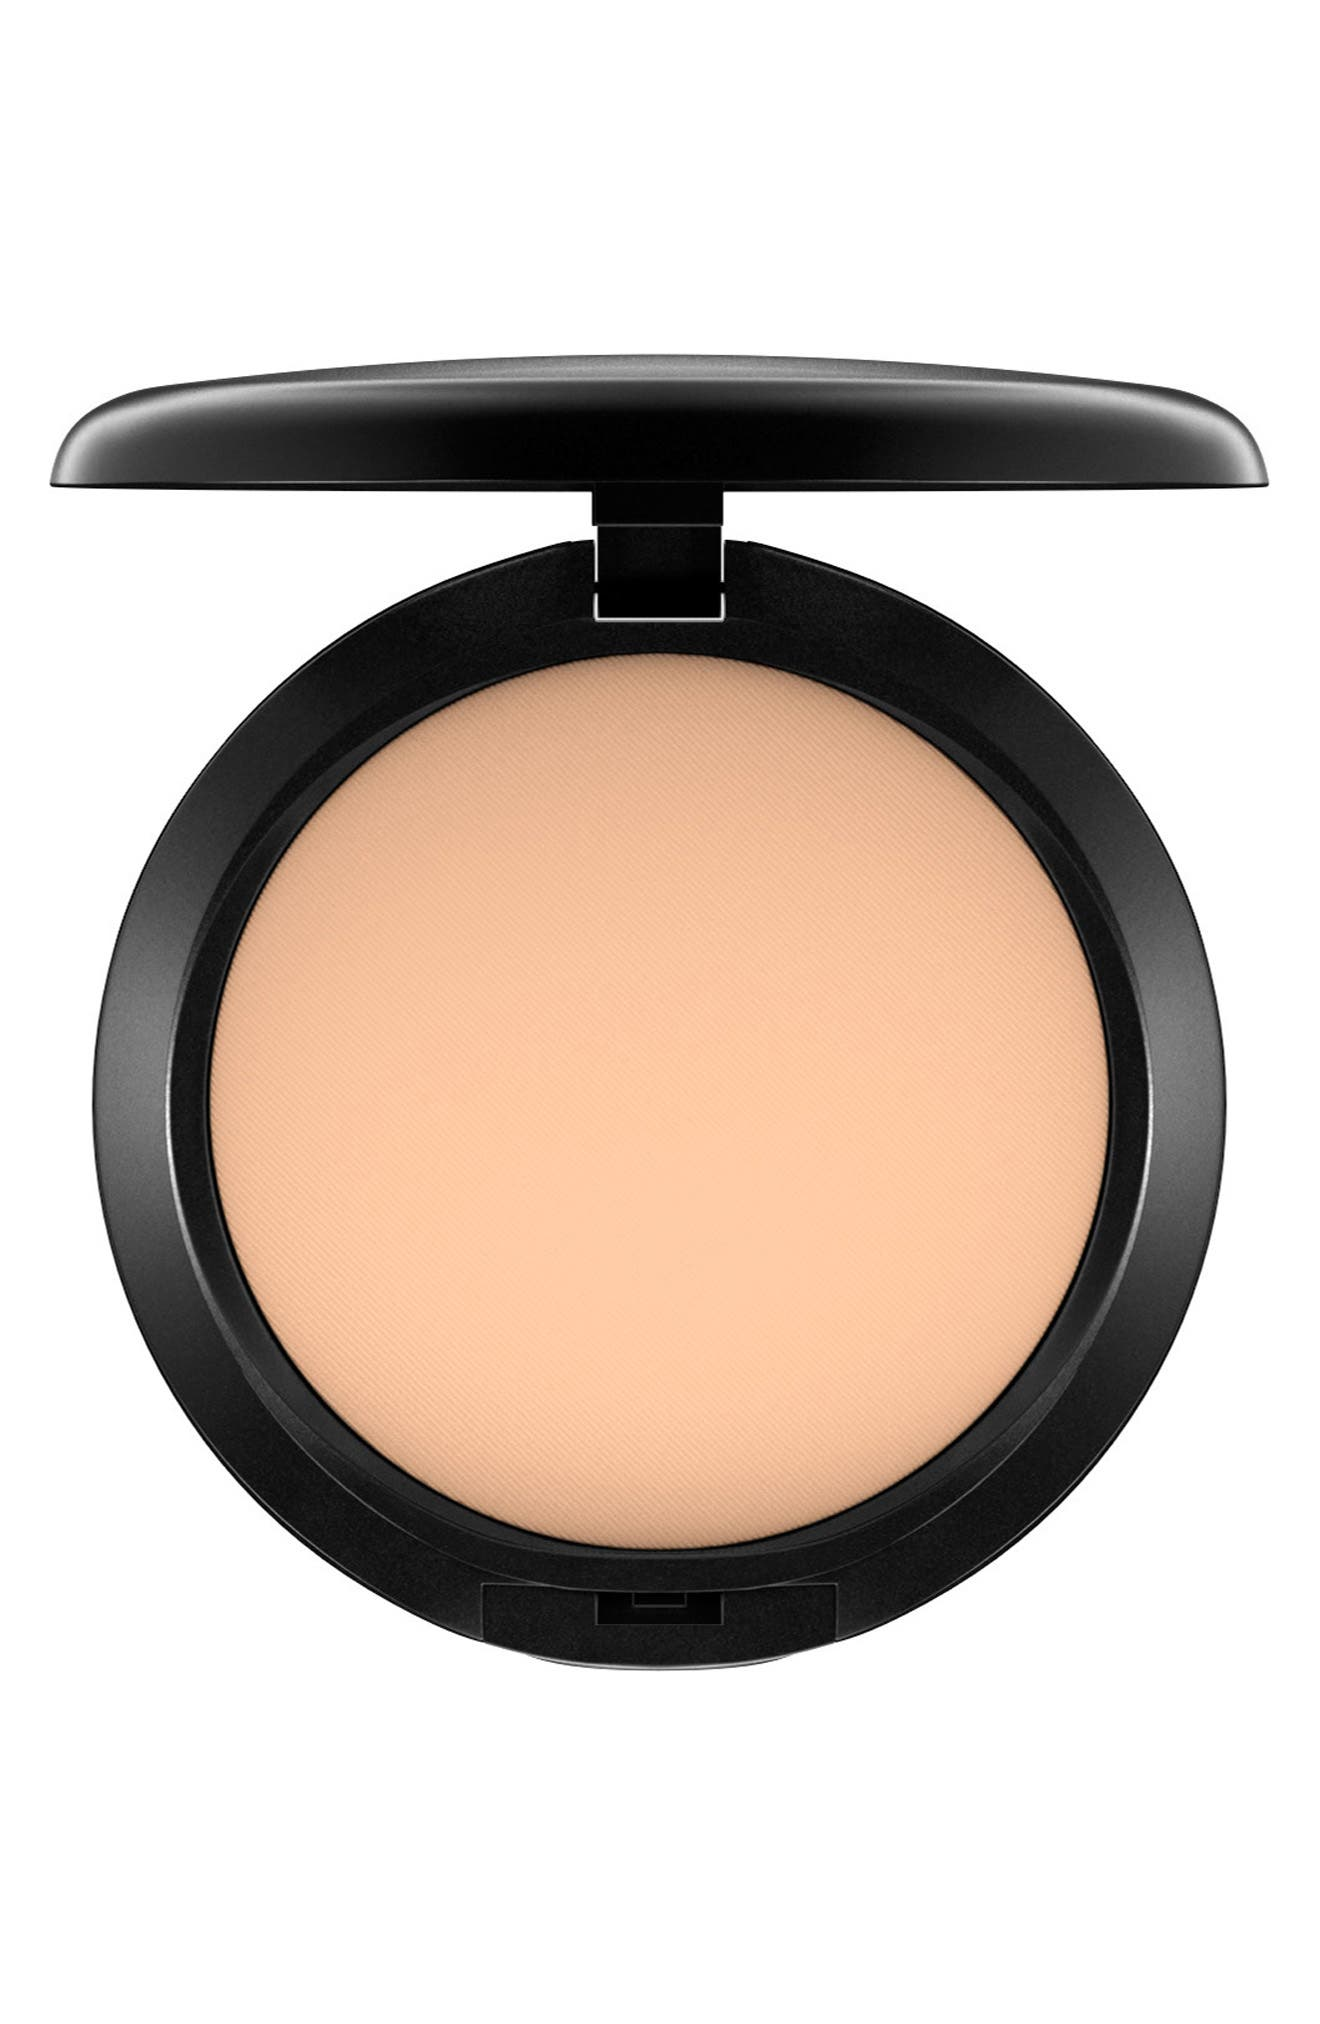 What it is: A one-step powder foundation that gives skin a smooth, even, all-matte finish with shine control and medium-to-full buildable coverage. Who it\\\'s for: All skin types, though especially ideal for those with oily skin. What it does: This powder foundation features a velvety texture that allows your skin to breathe and delivers color that stays true for up to 24 hours. Formulated to immediately reduce the appearance of pores, this oil- and